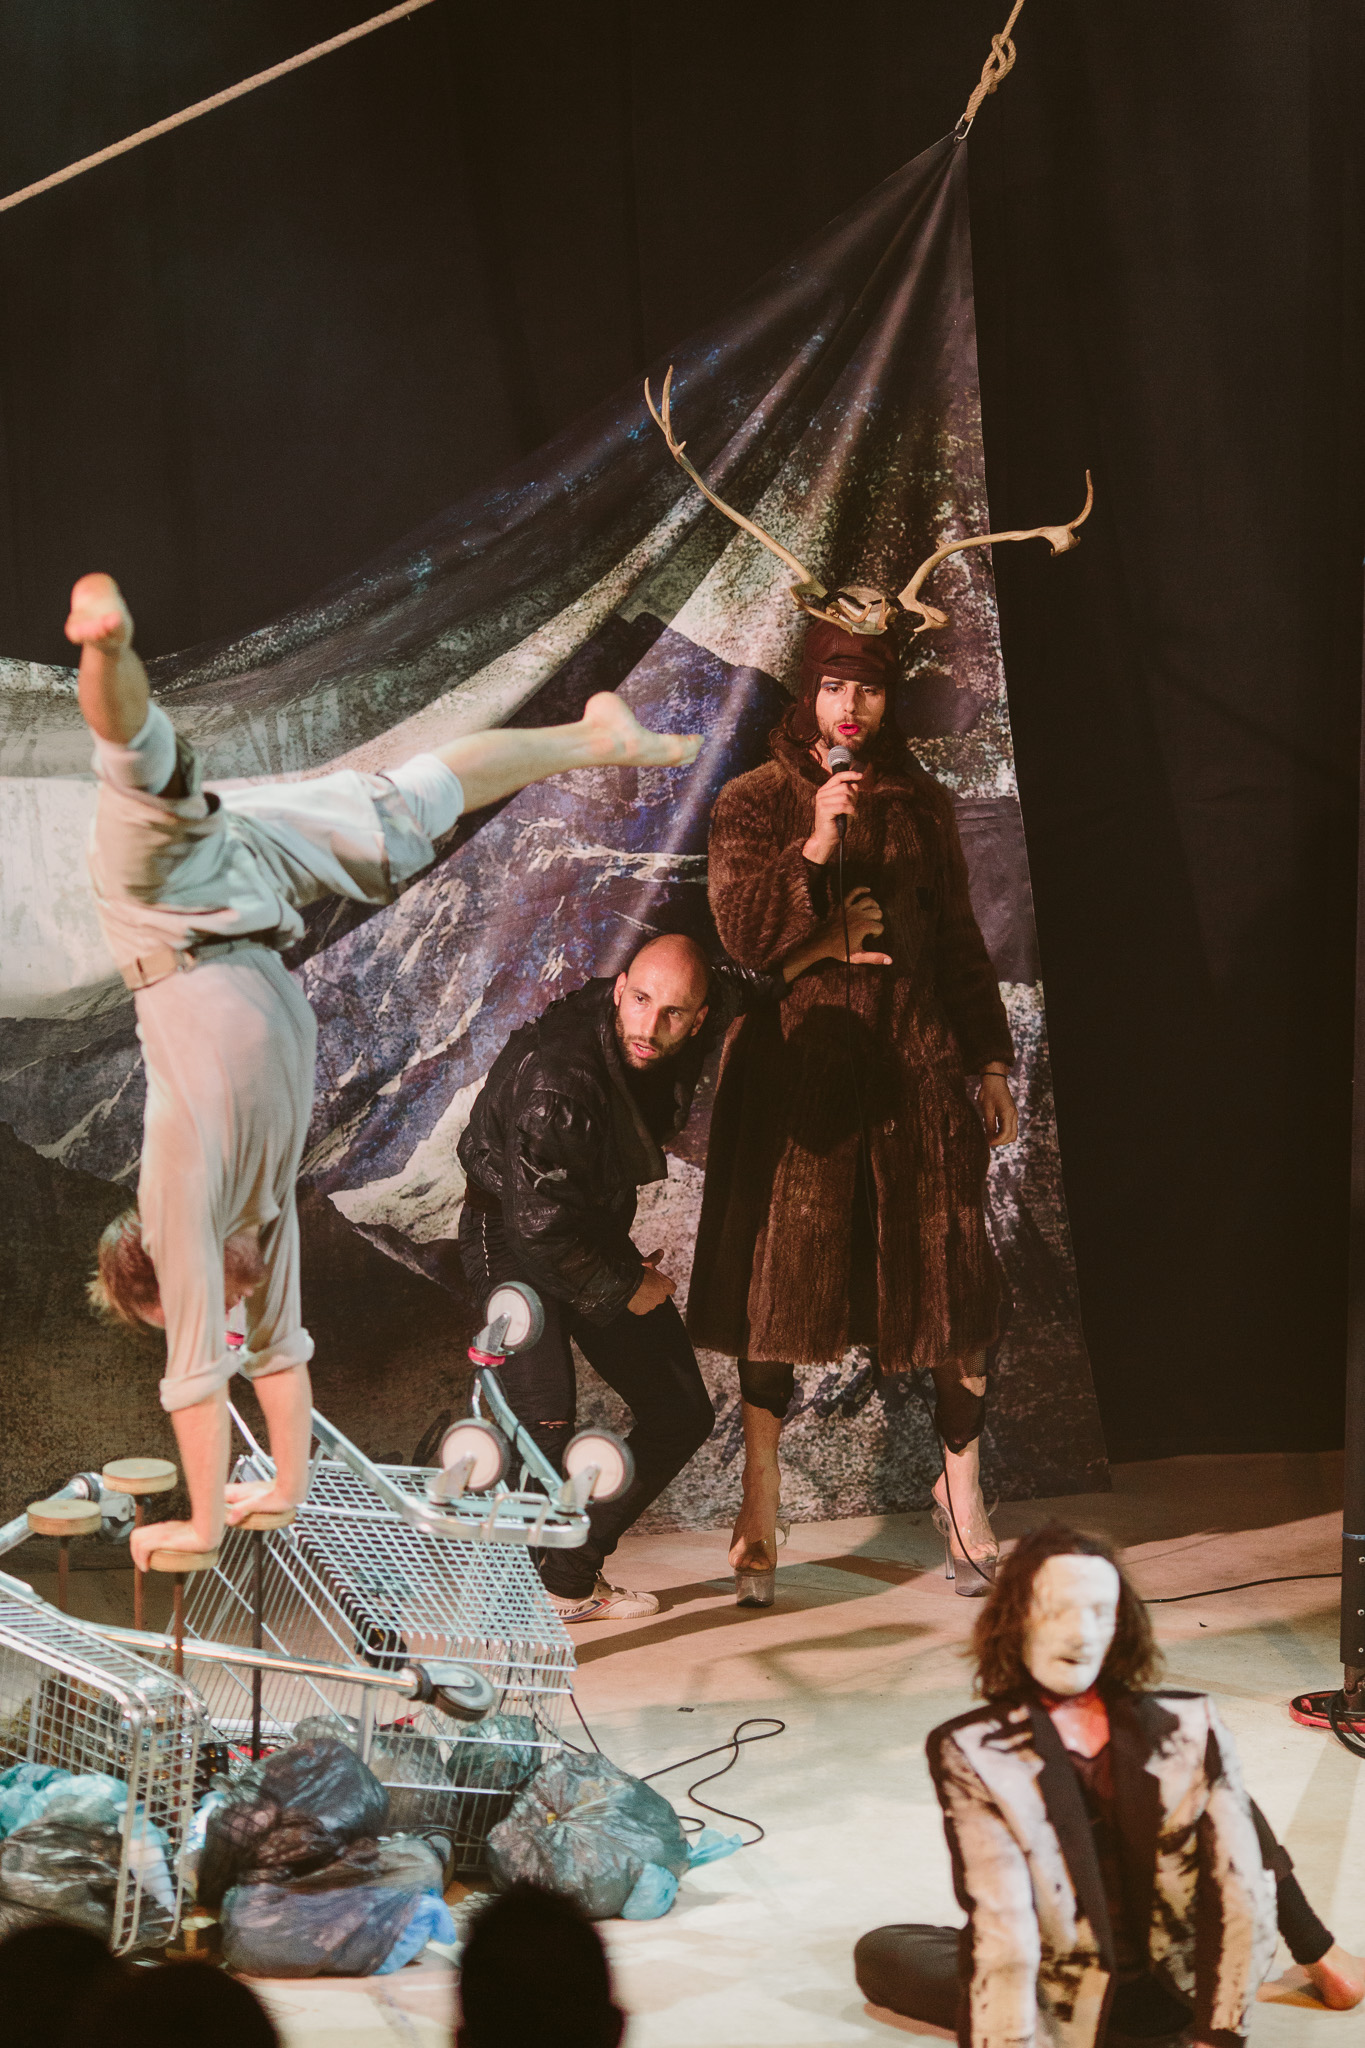 All Genius, All Idiot by Svalbard Co at the Adelaide Fringe Festival March 2016